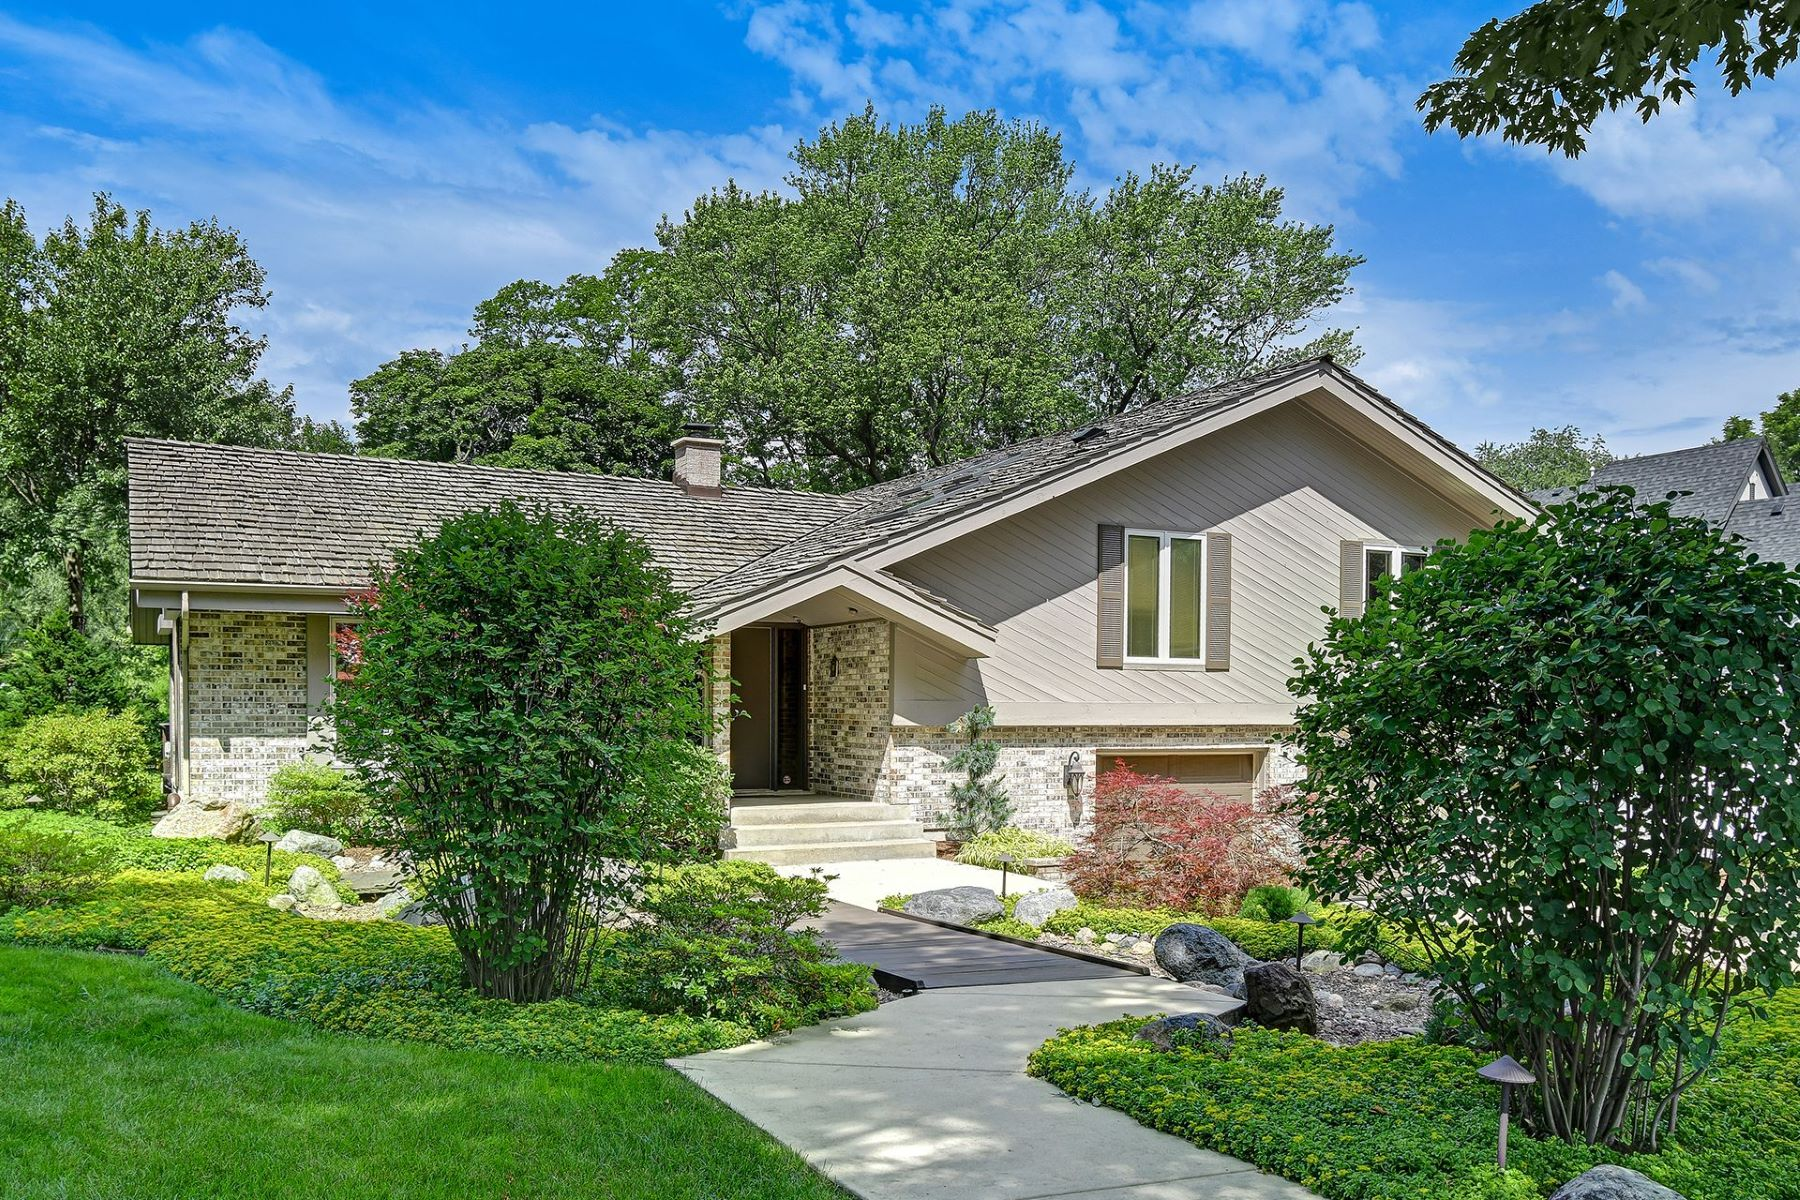 Single Family Homes for Active at 228 Coe Road, Clarendon Hills, IL 60514 228 Coe Road Clarendon Hills, Illinois 60514 United States